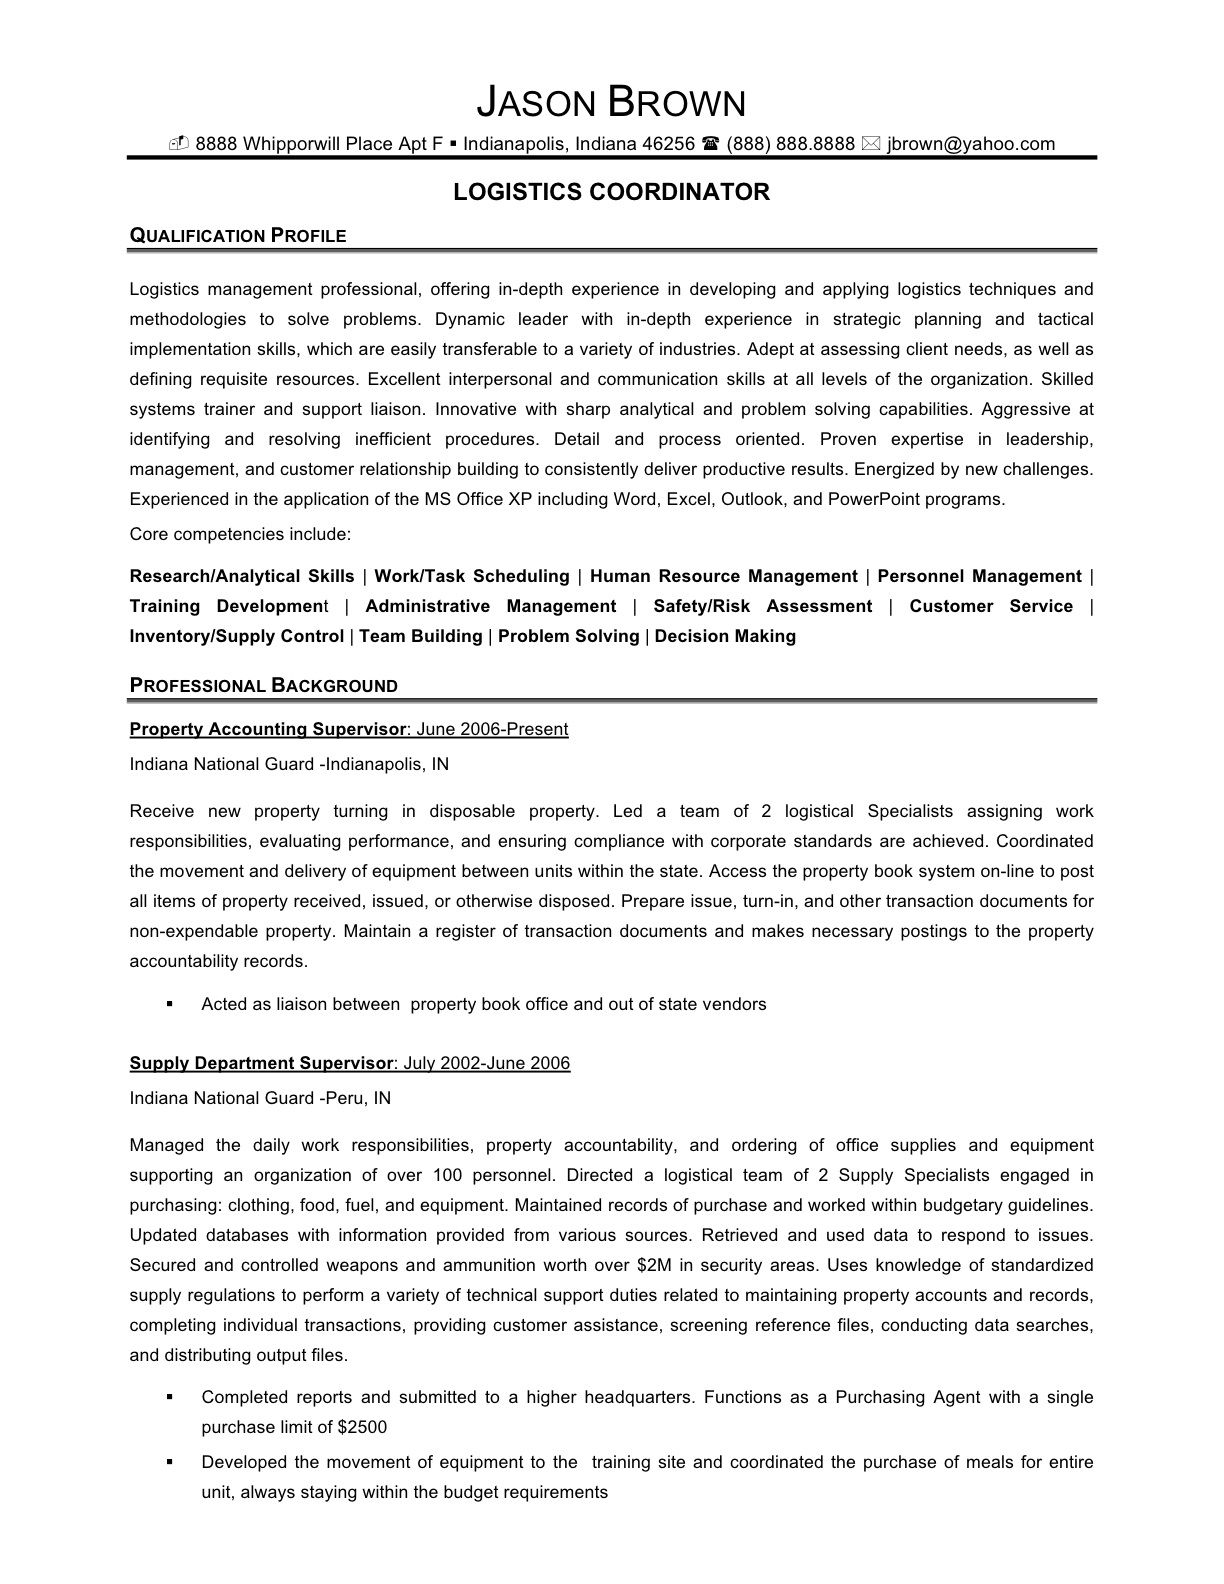 senior logistic management resume | Logistics Coordinator.1 | resume ...